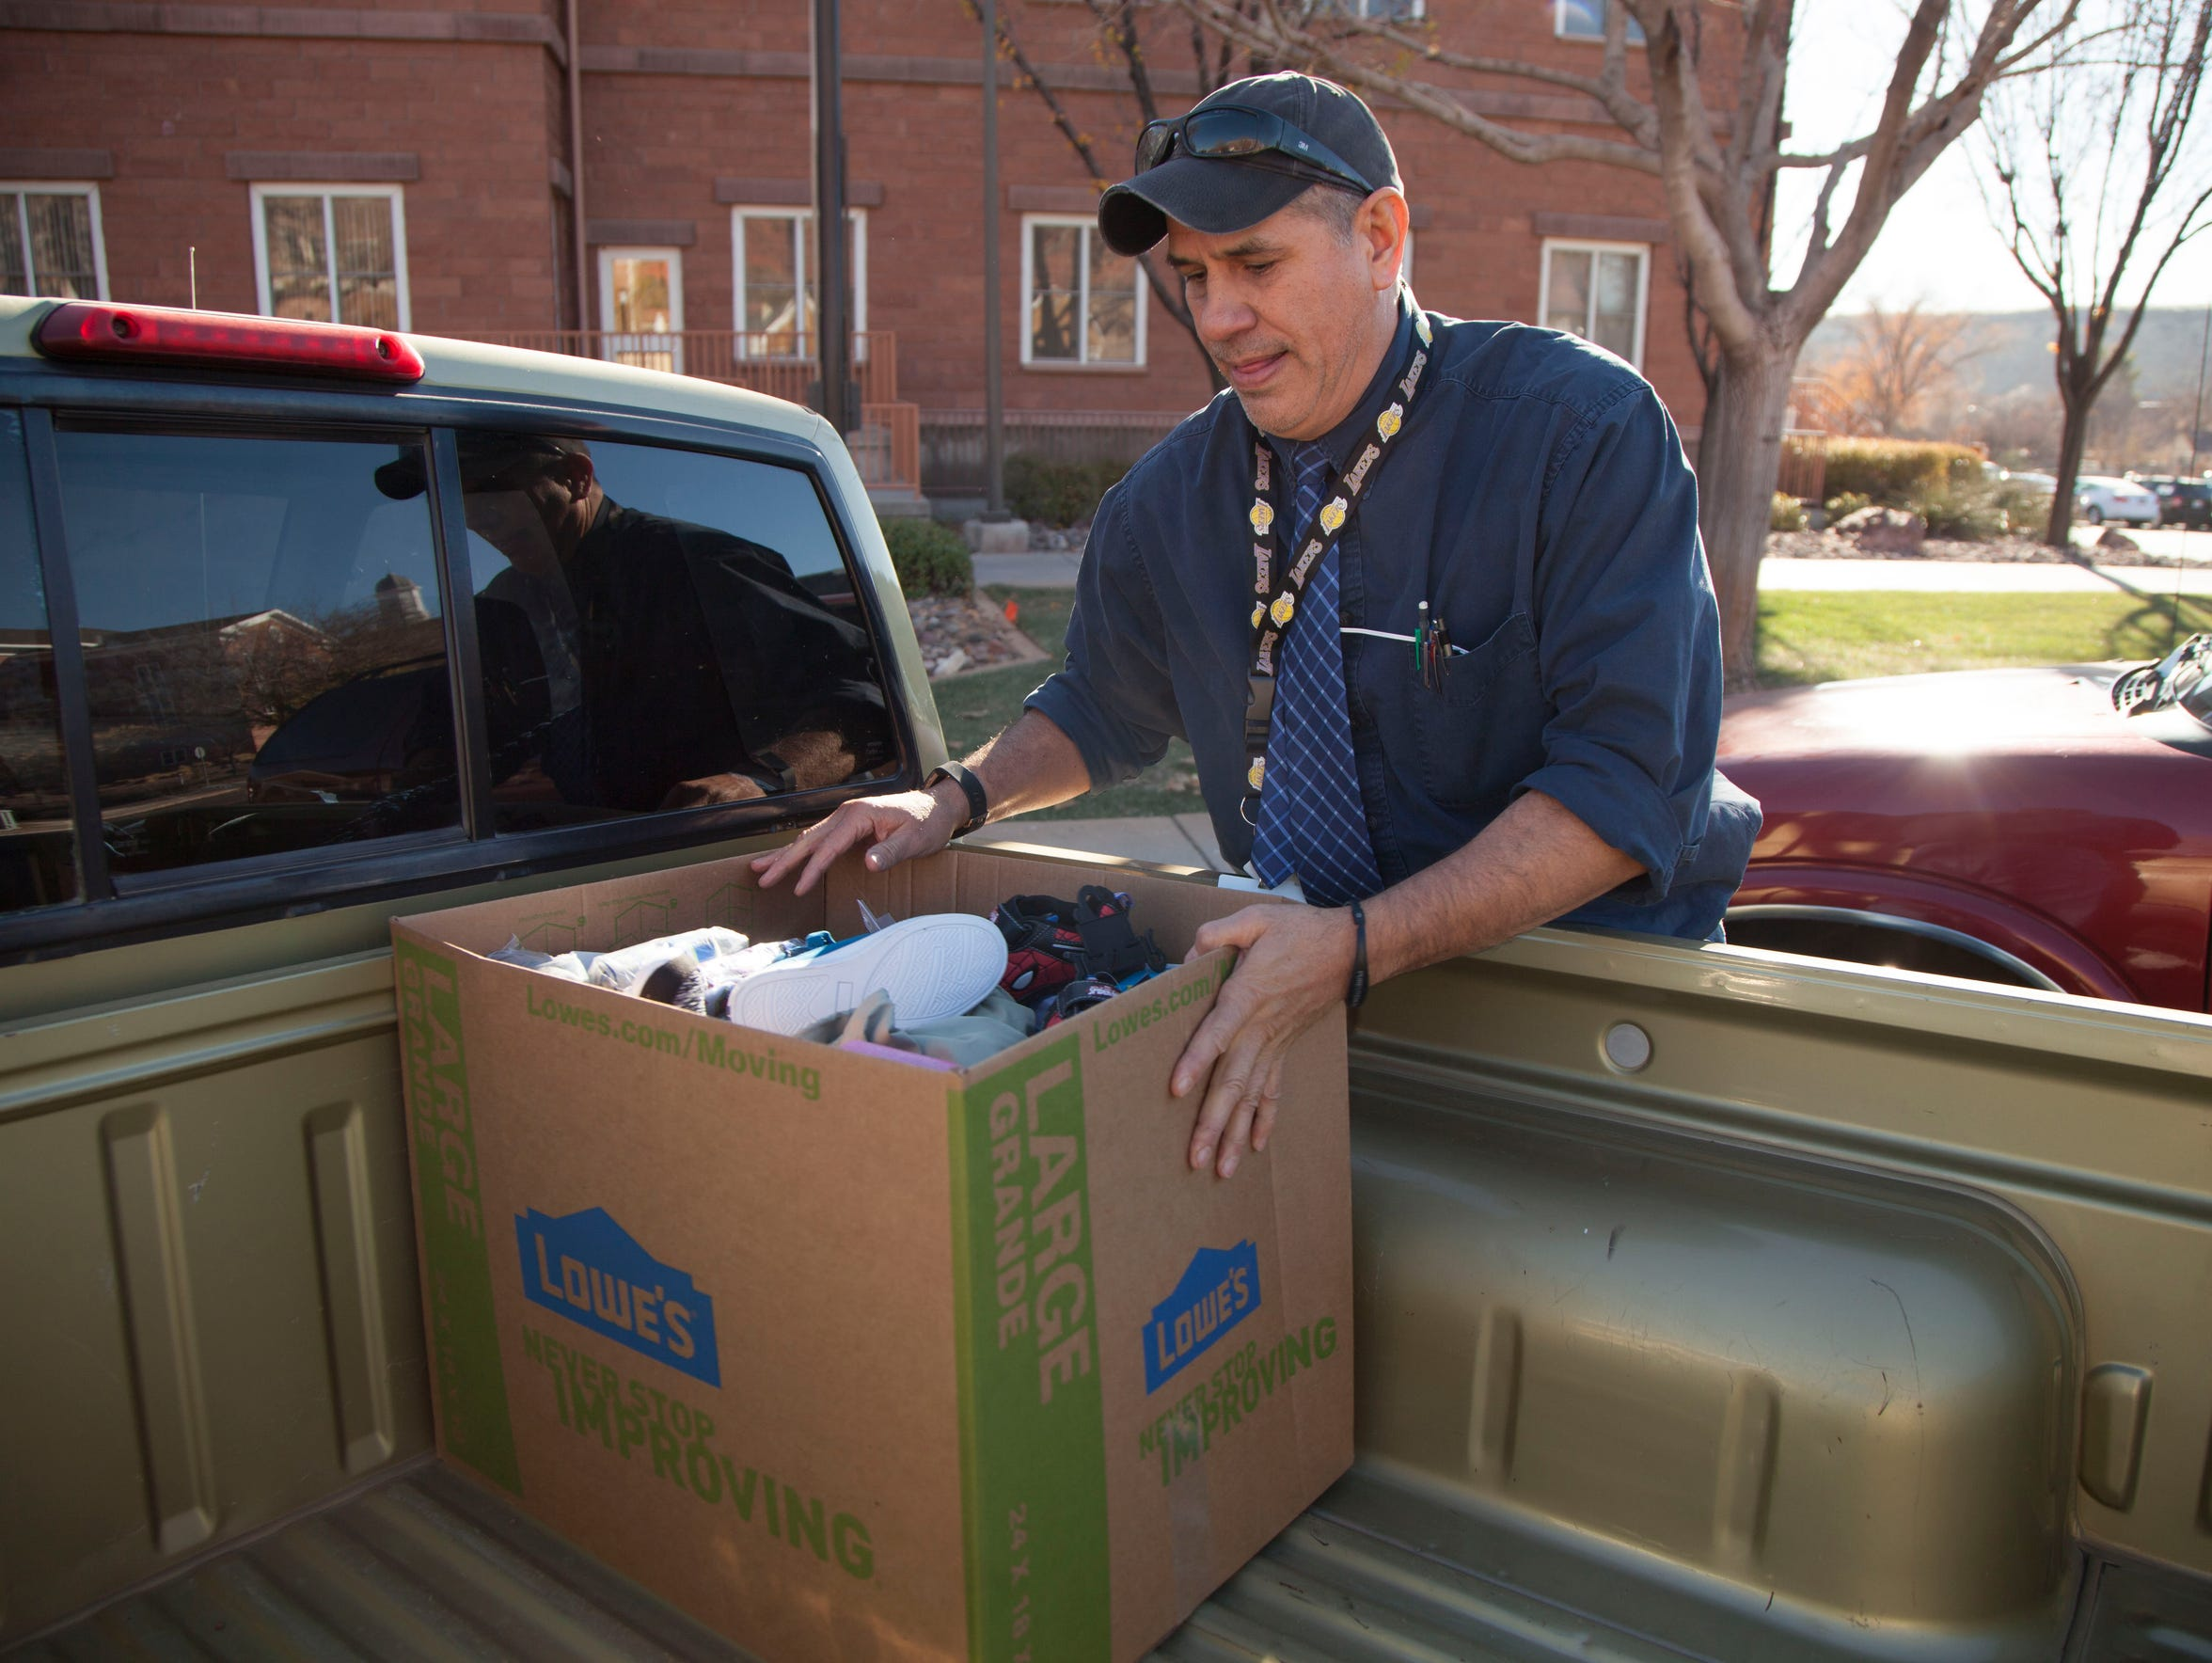 Glen Mesa, a Washington County School District counselor, receives donations from Step Up St. George to distribute to homeless families and students he serves at his schools.